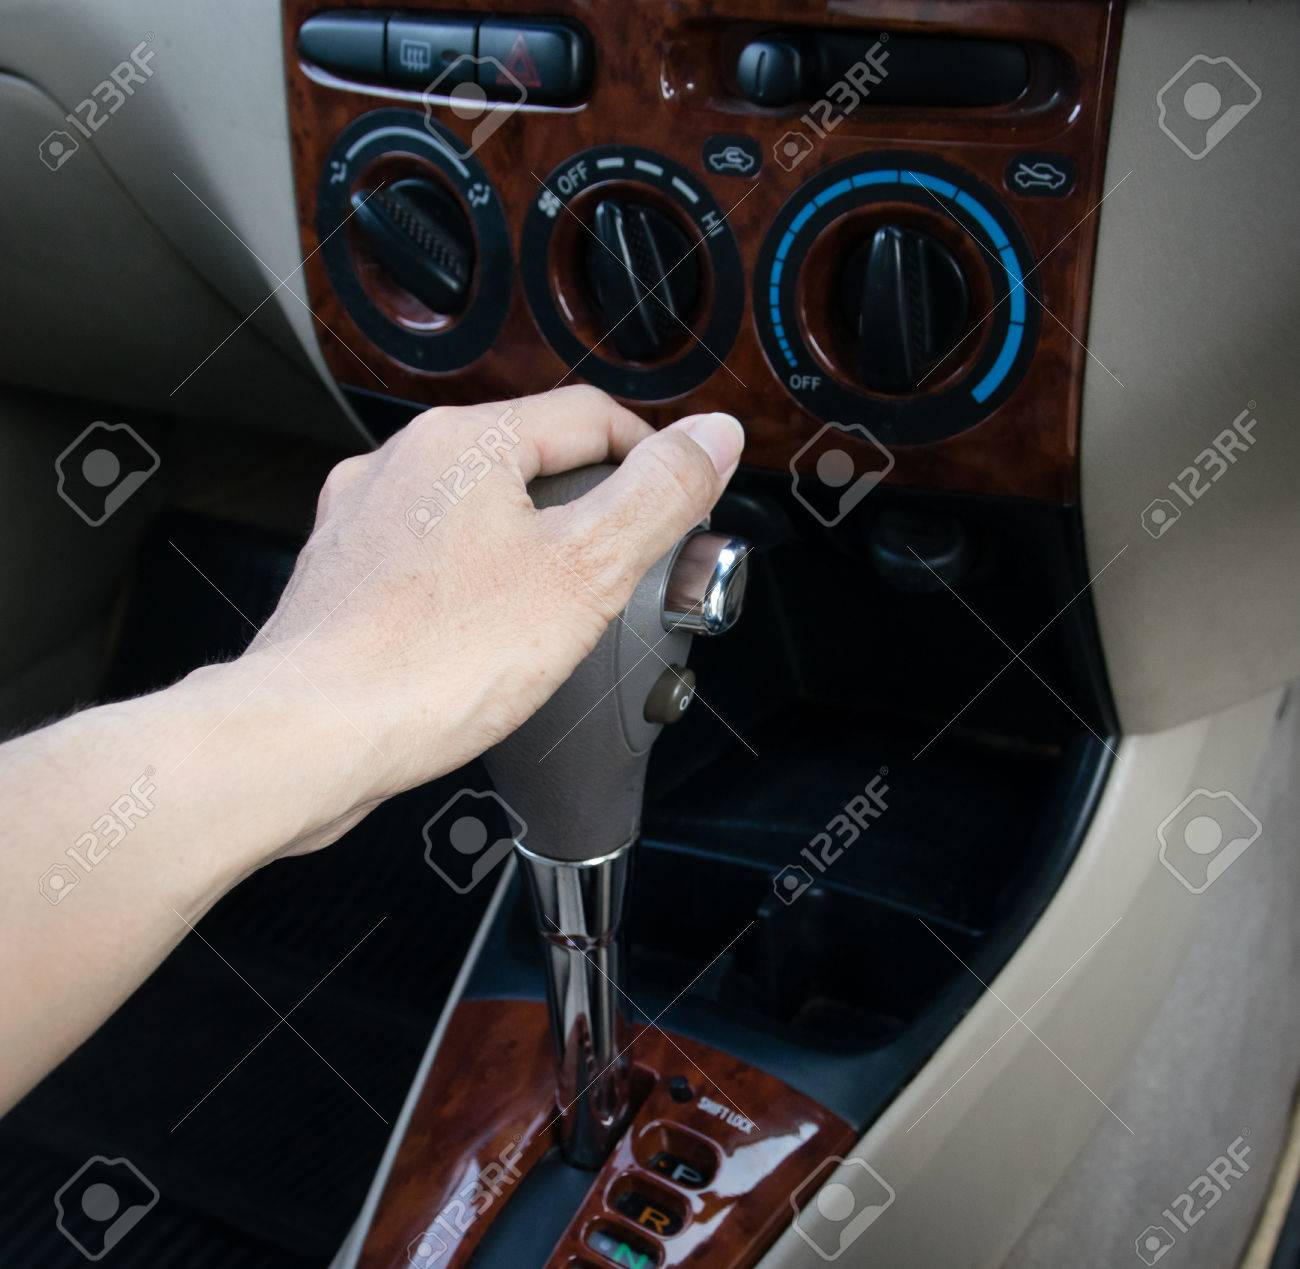 hand on automatic gear shift, Man hand shifting an automatic